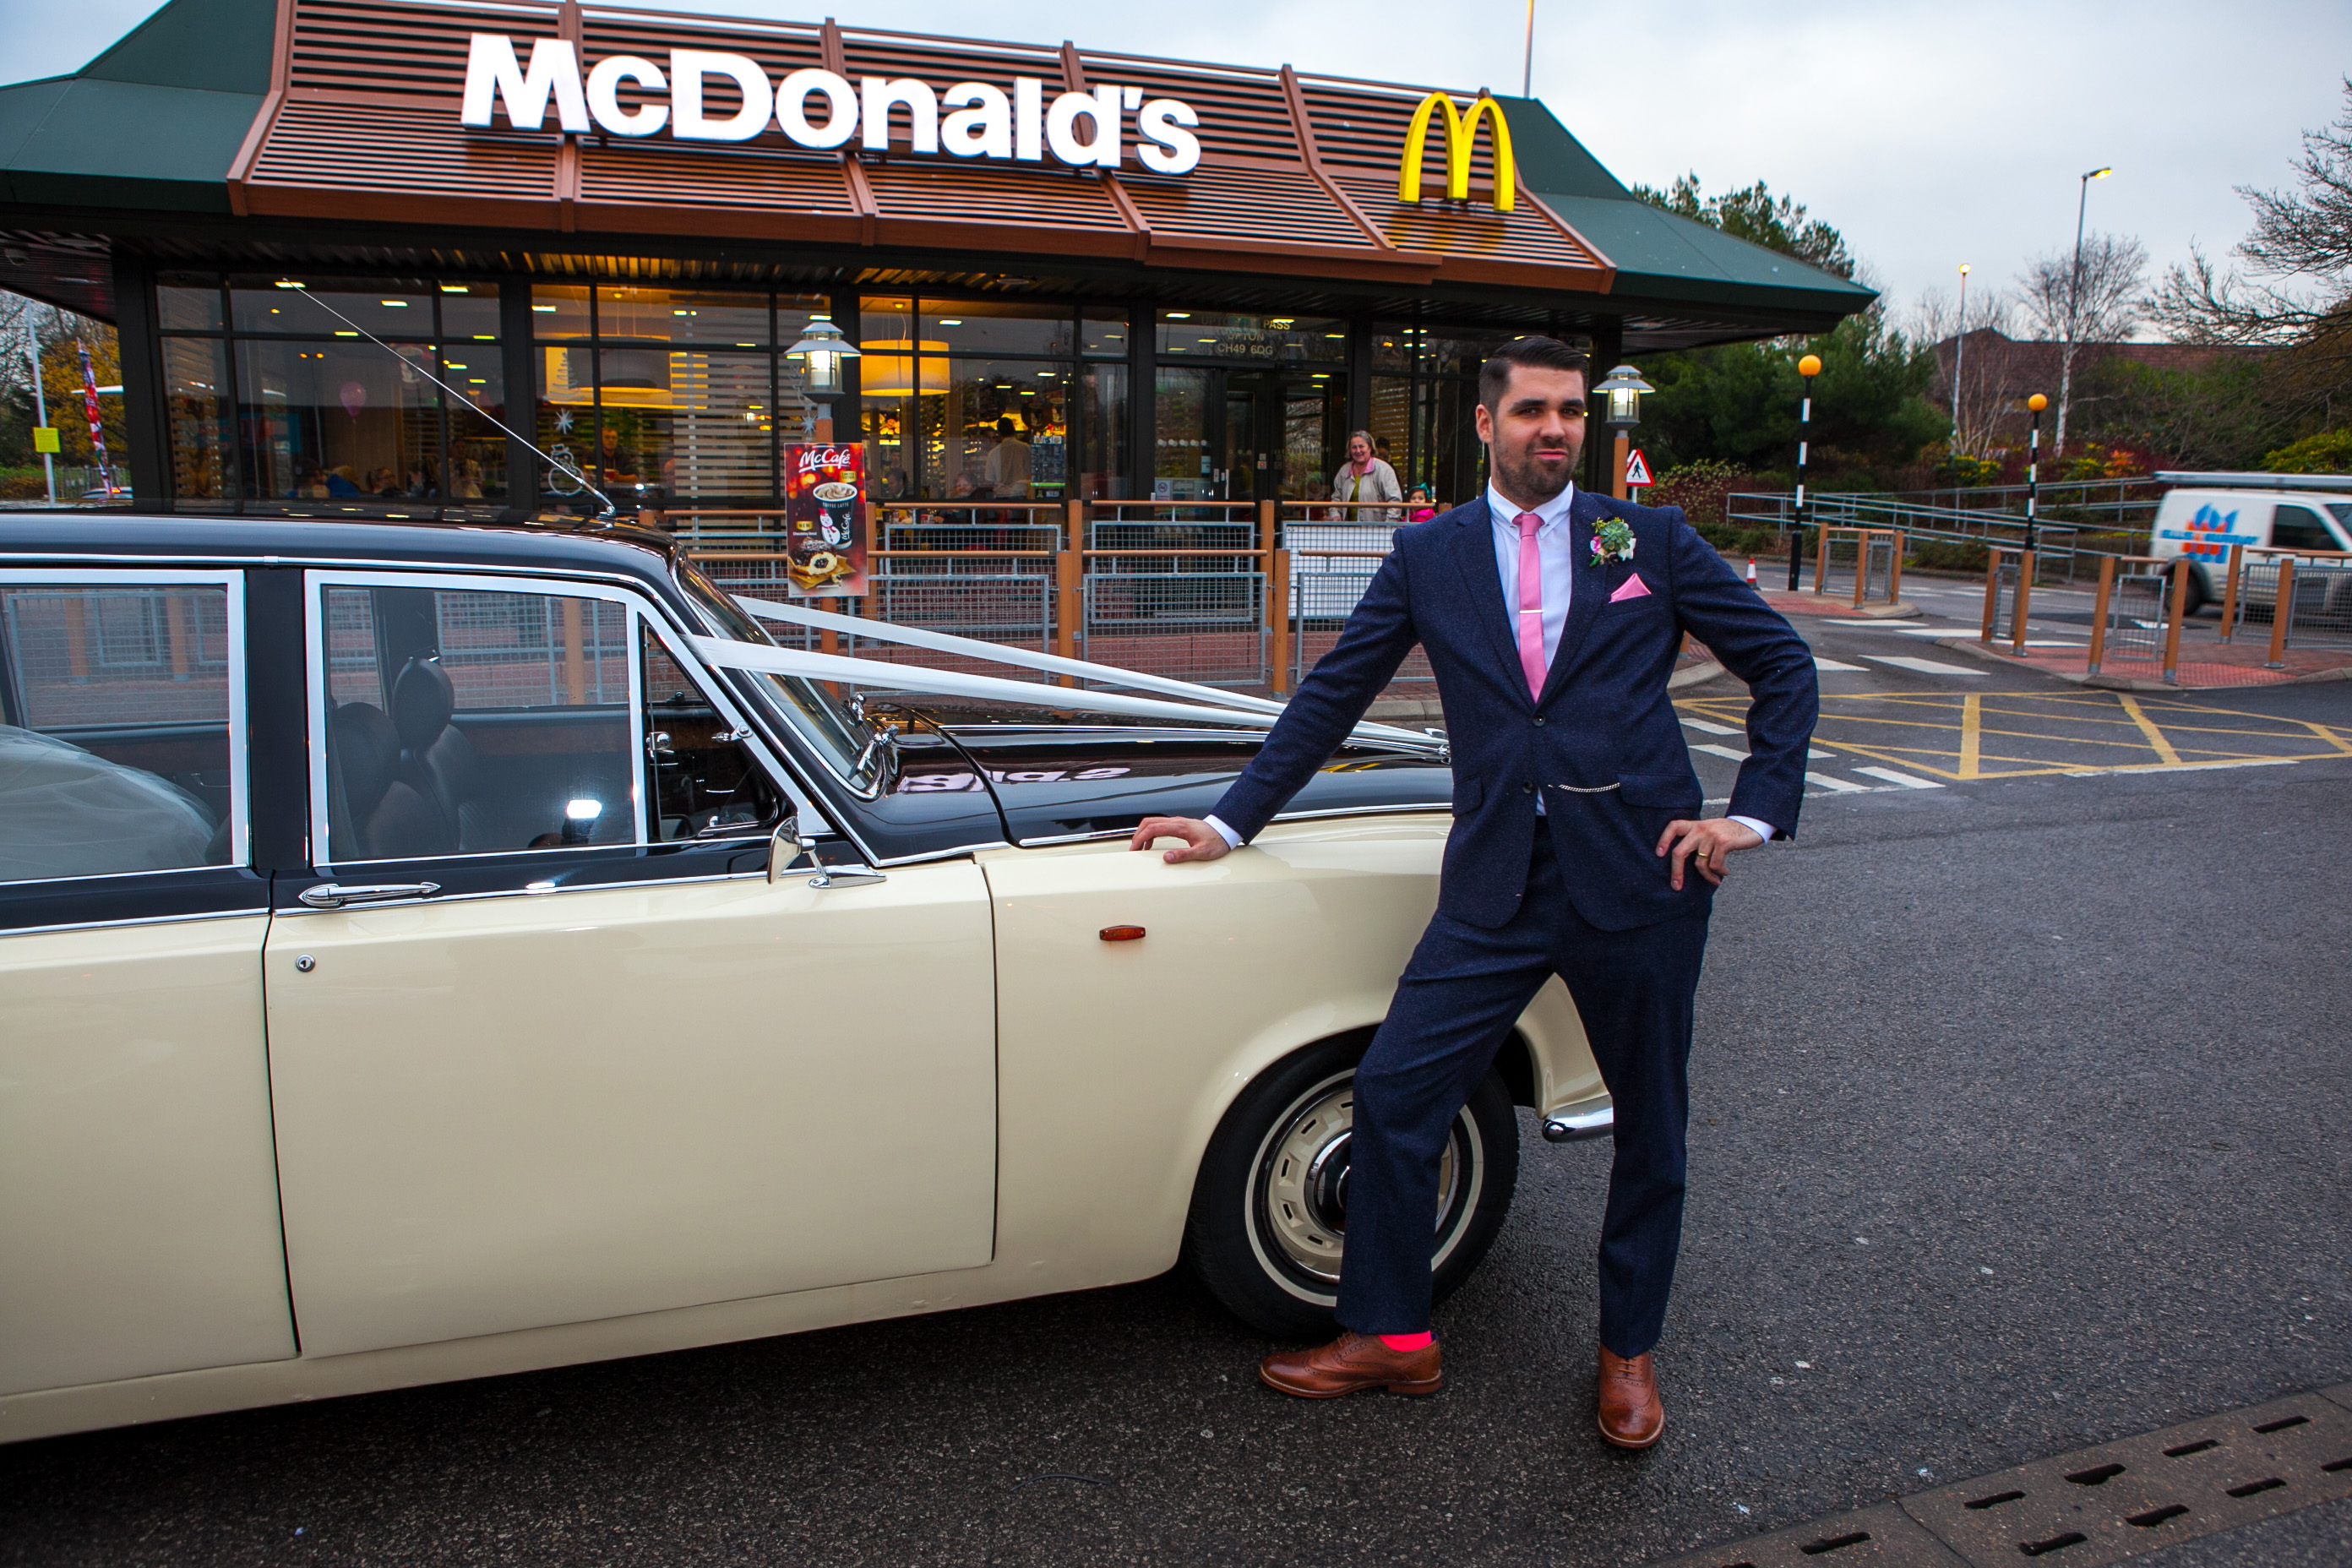 Groom mcdonalds